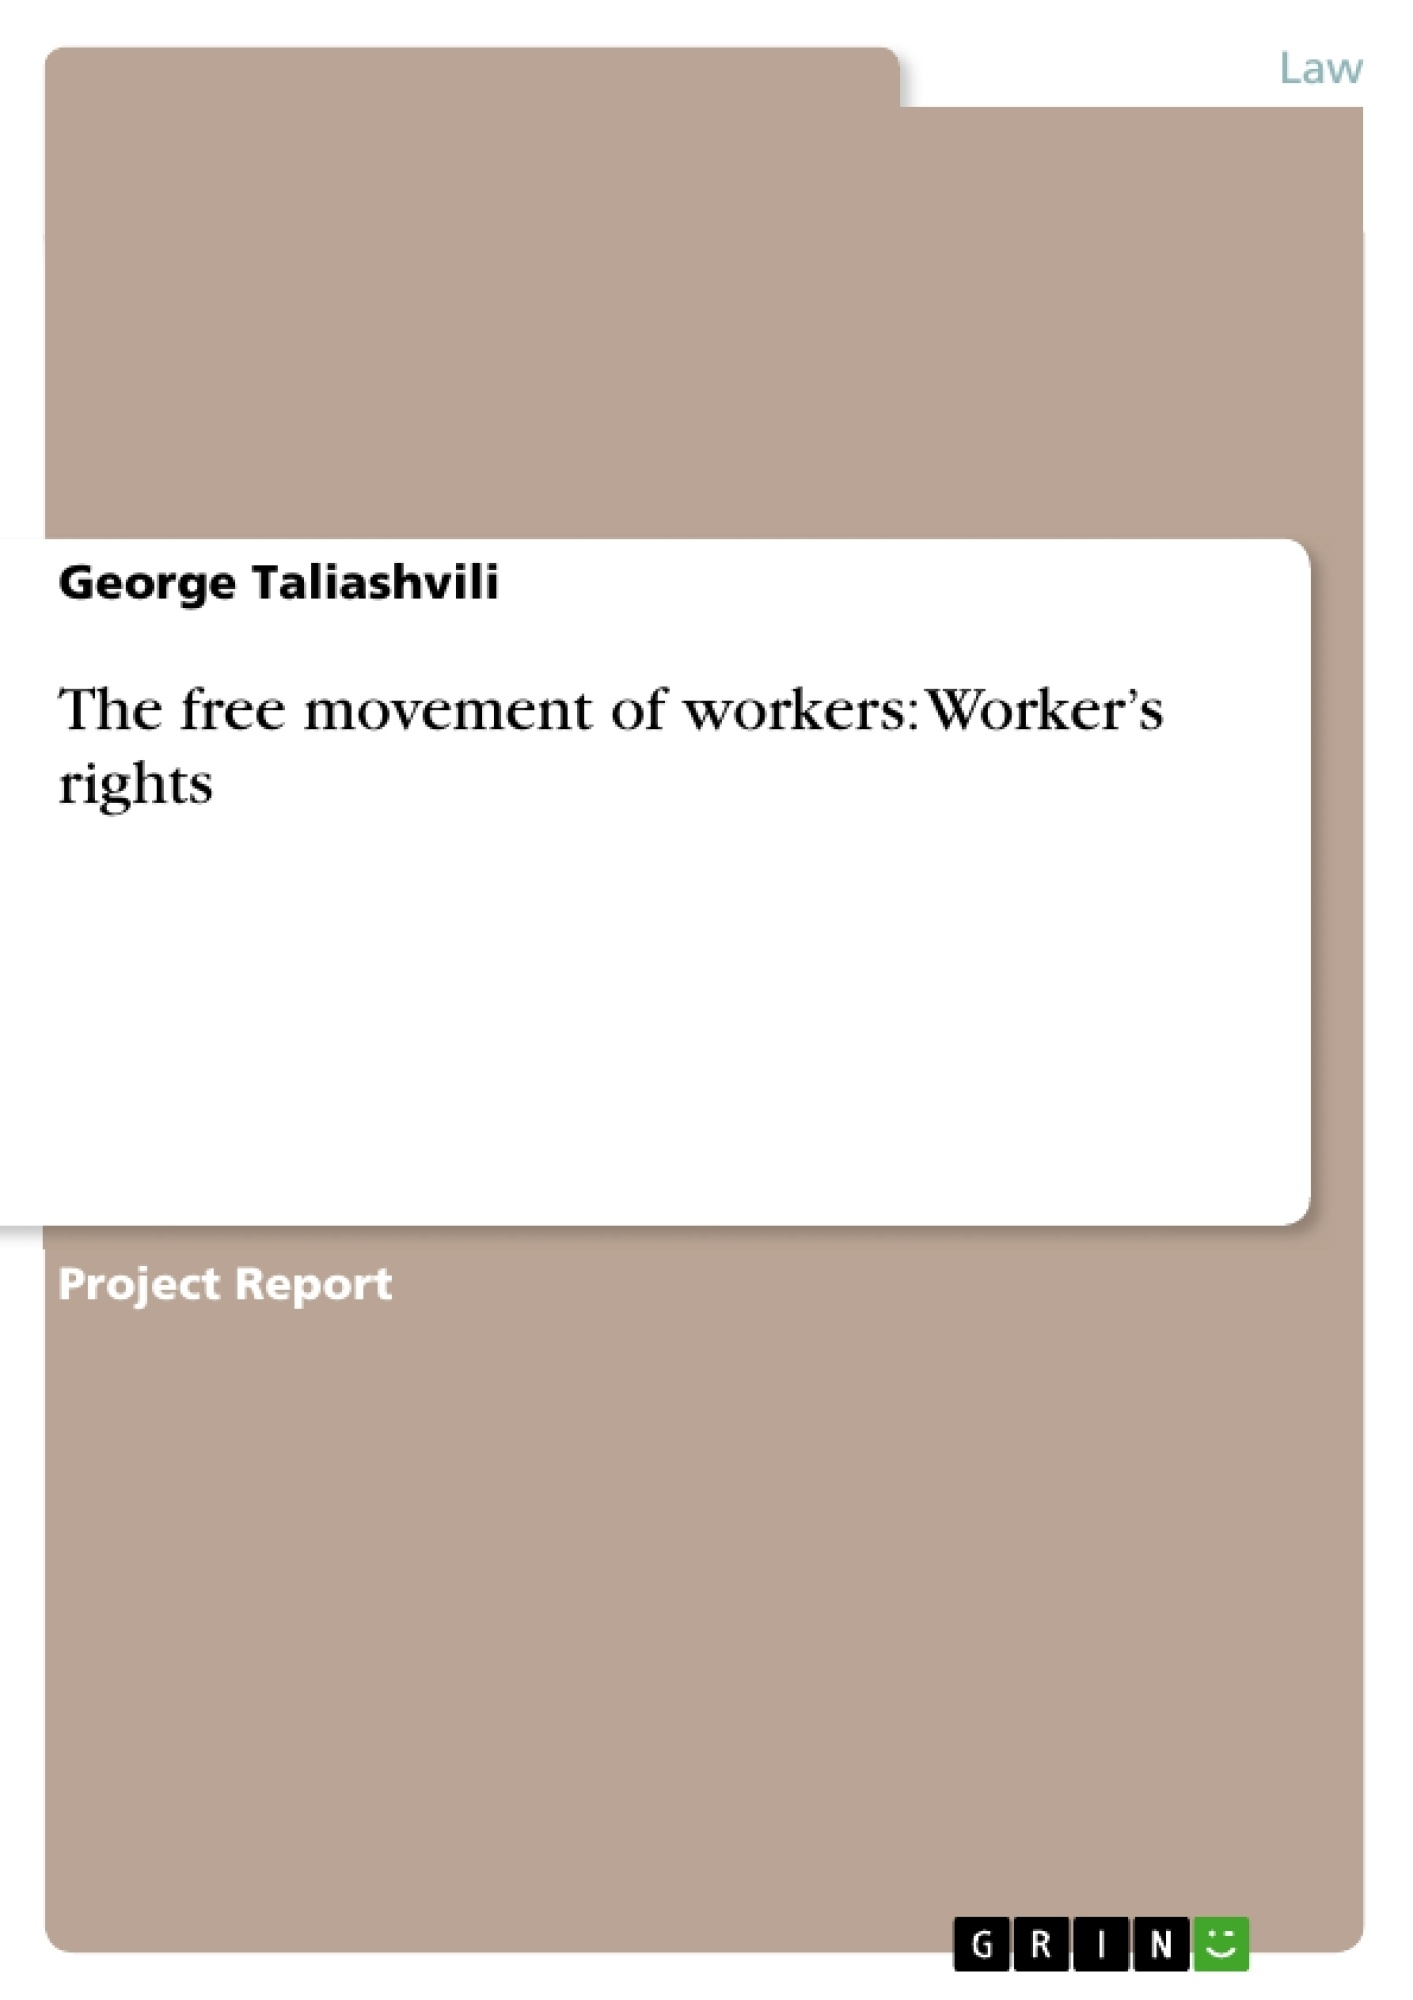 The free movement of workers: Worker's rights